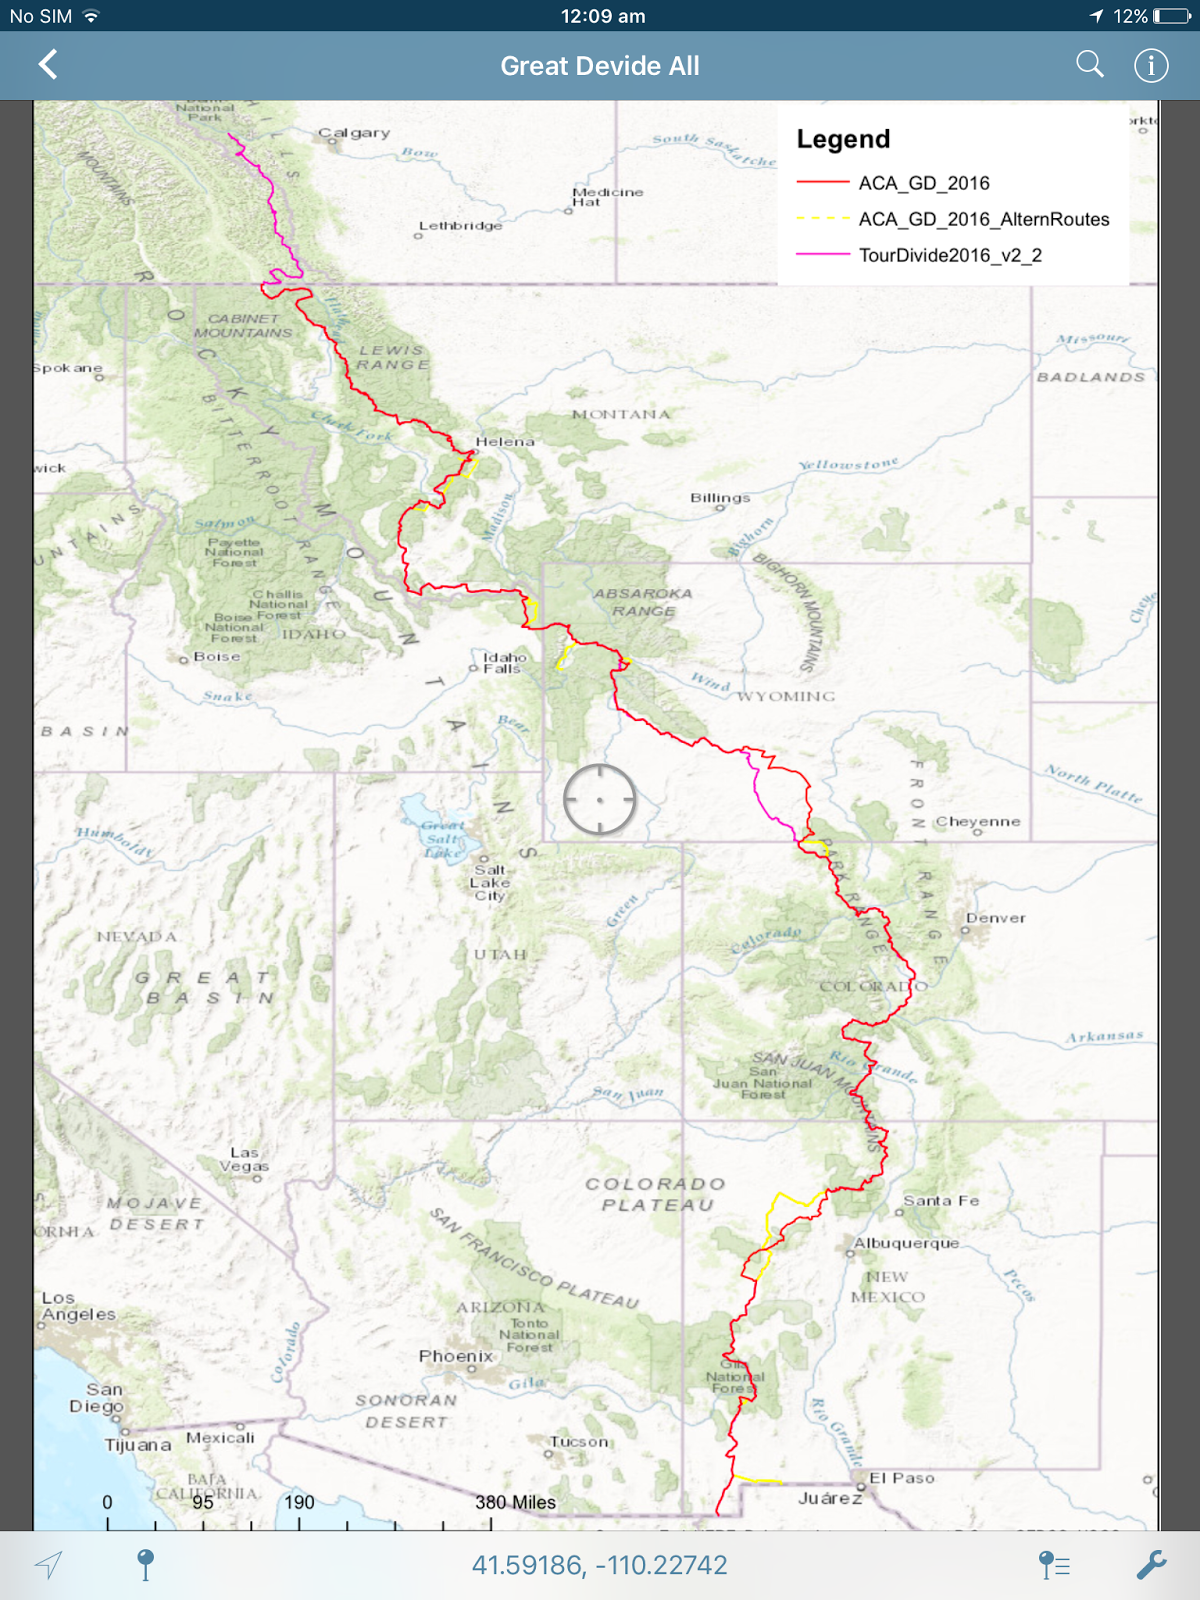 the great divide mountain bike route is a 4 500 km off road cycling trail from banff canada to antelope wells on the us mexican border